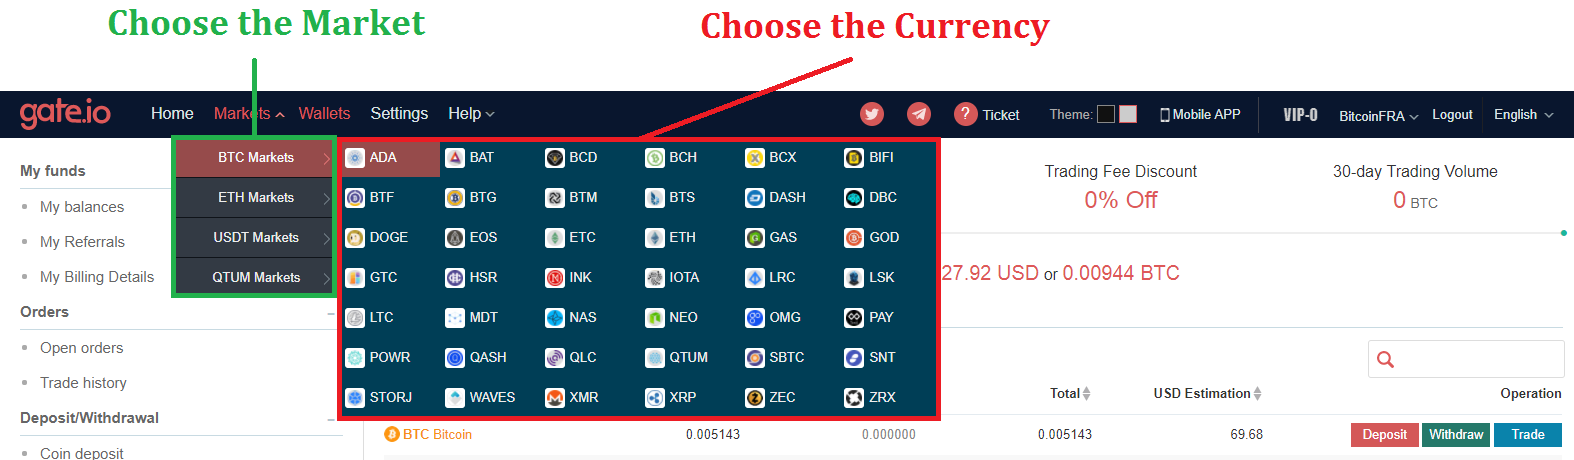 How to pick cryptocurrencies for trading